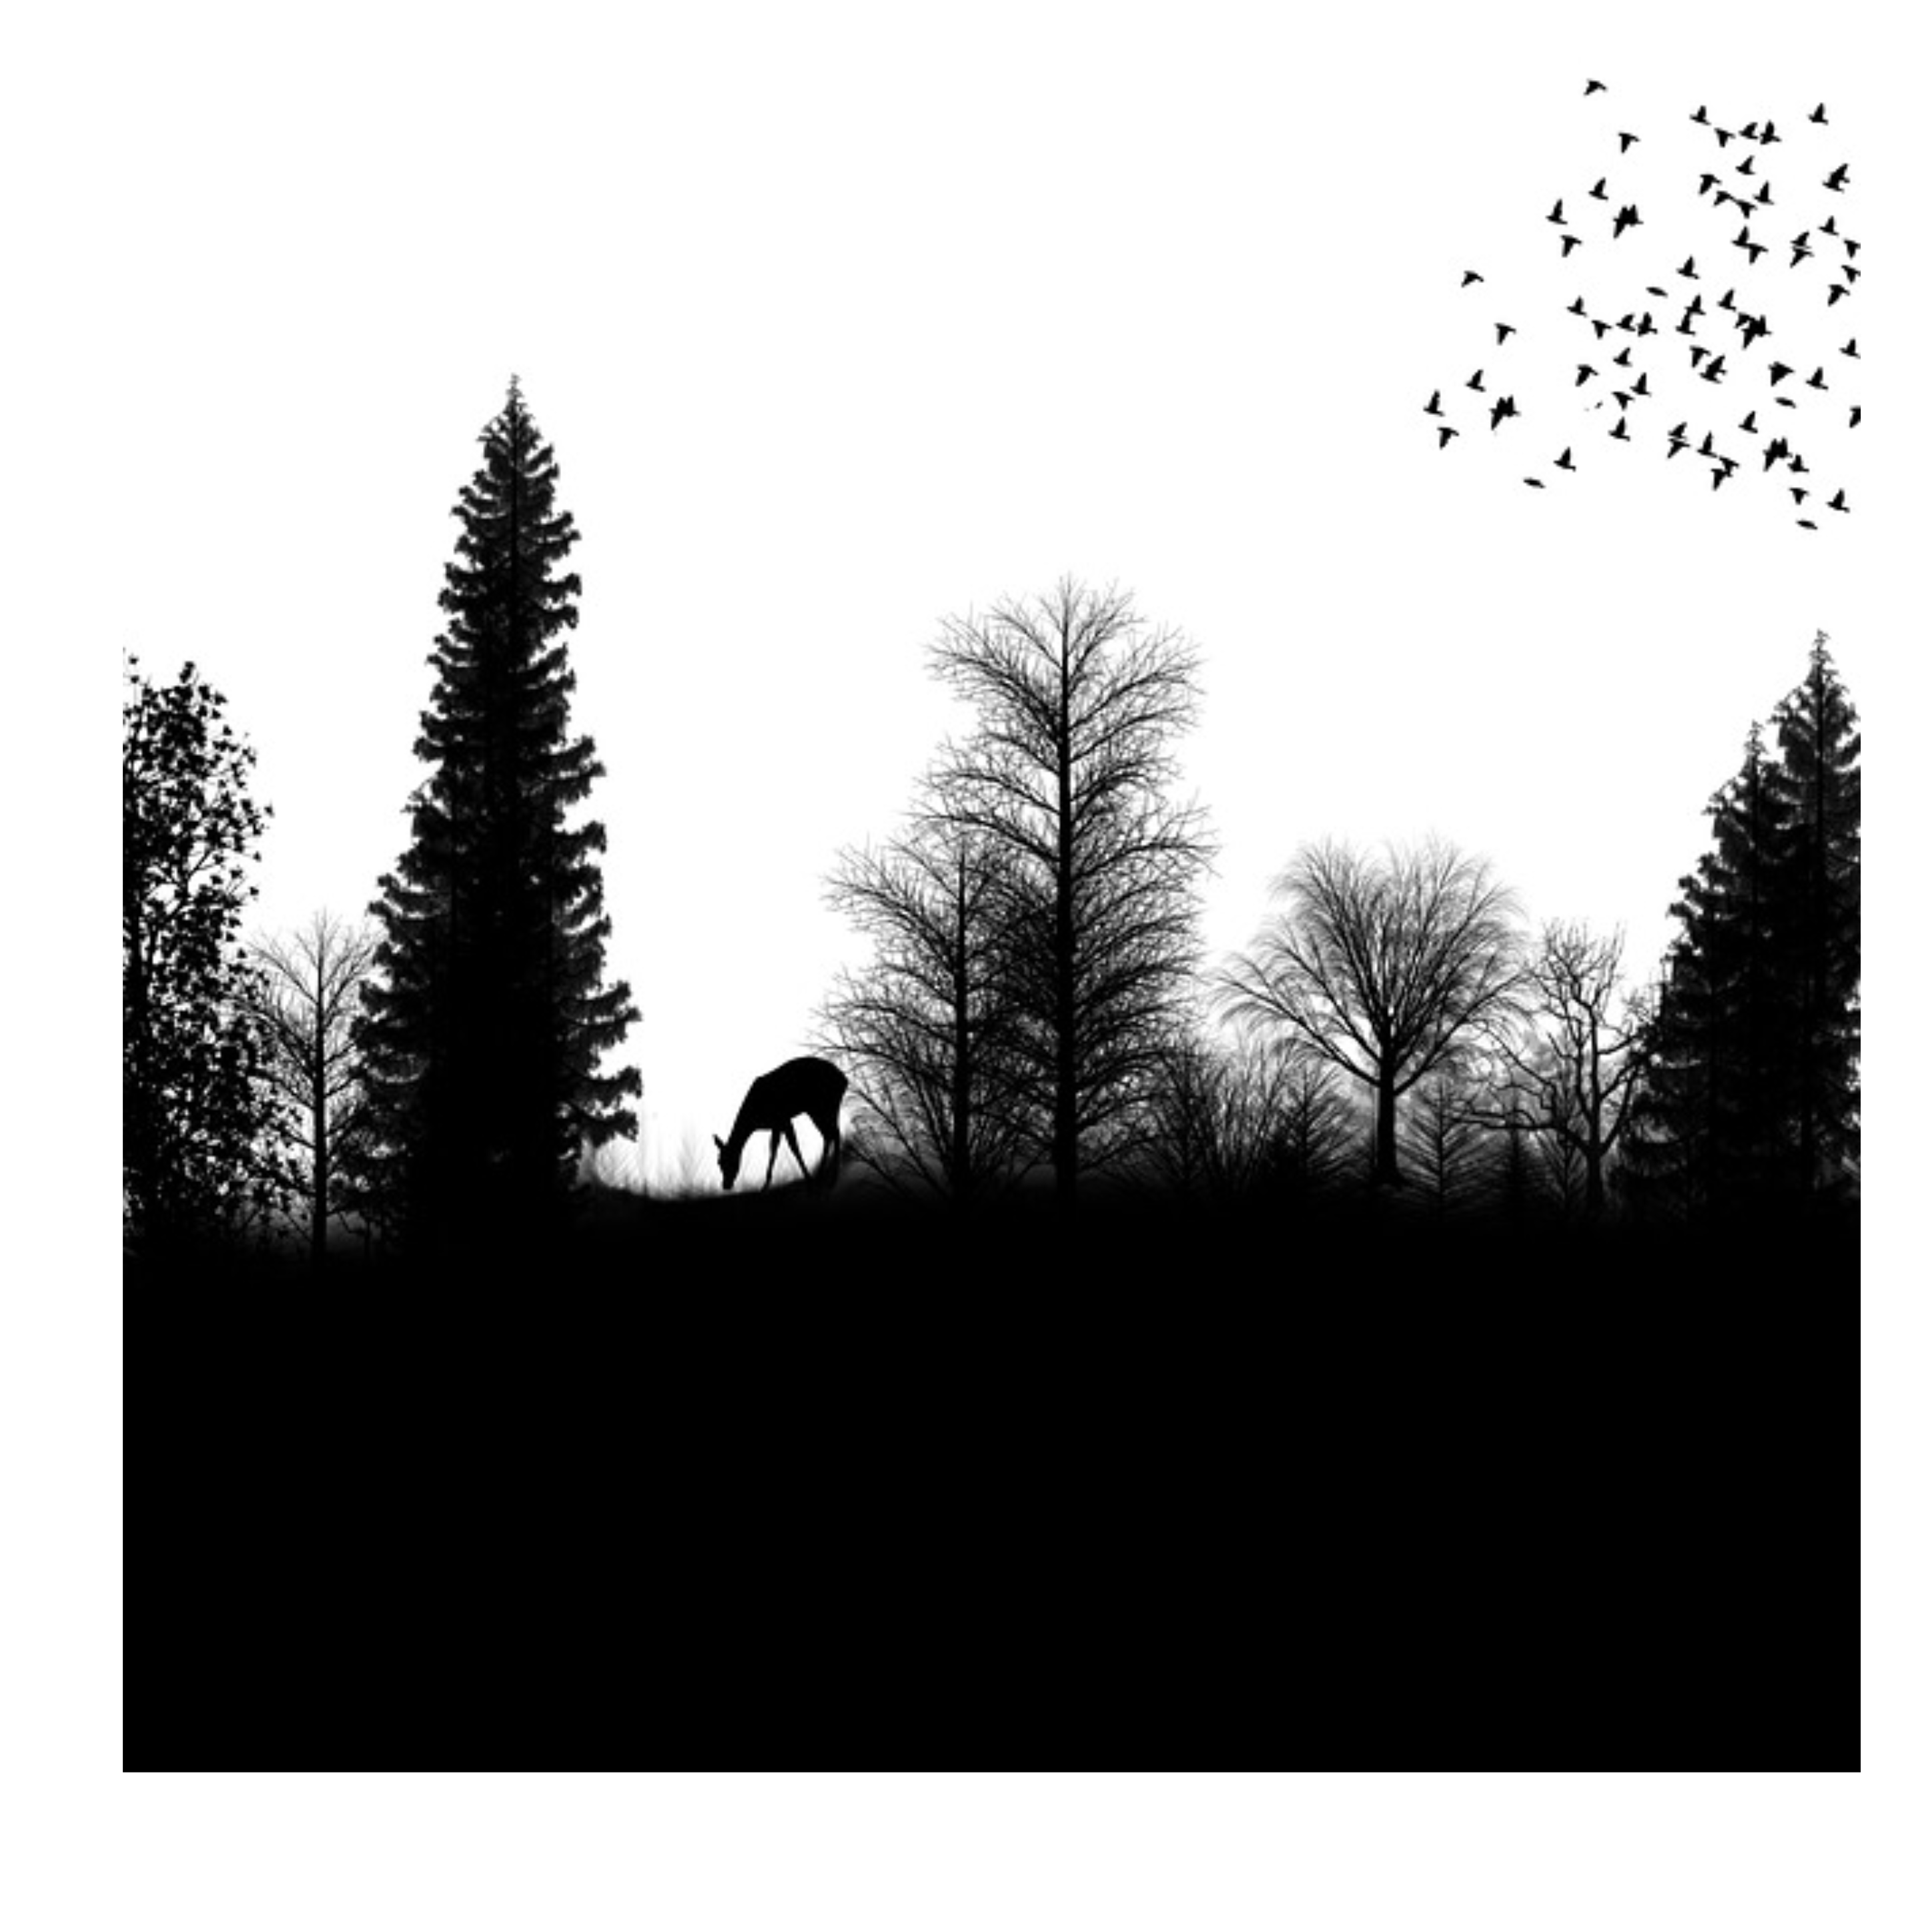 forest clipart black and white transparent